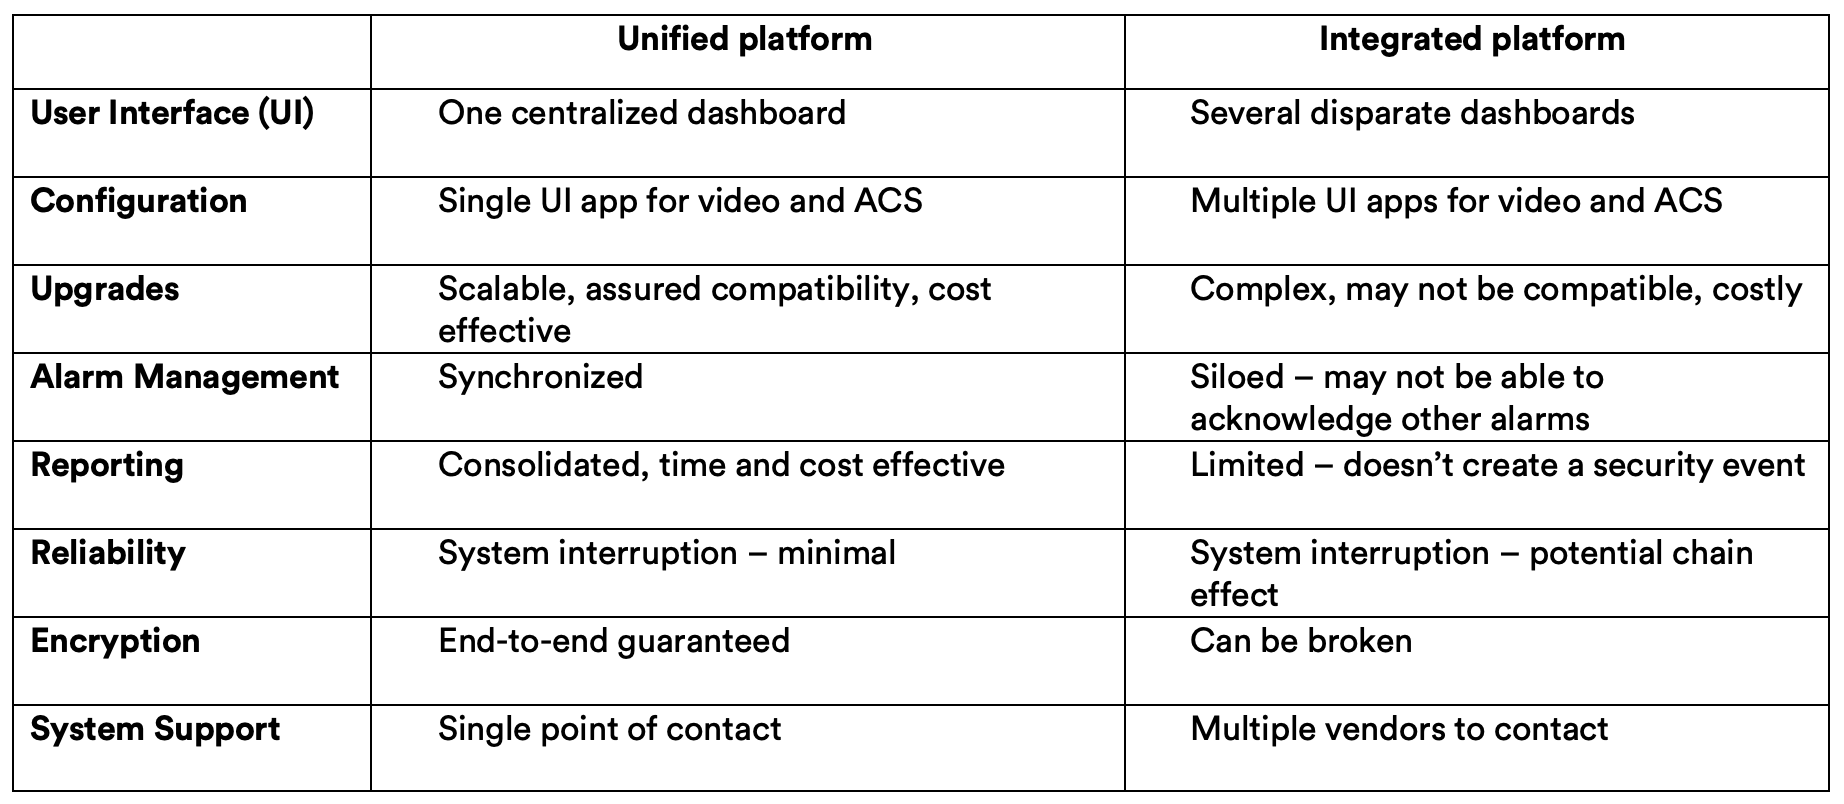 unified vs integrated platform, user interface (UI), centralized disparate dashboard, configuration, ACS, alarm management, consolidated reporting, end-to-end encryption